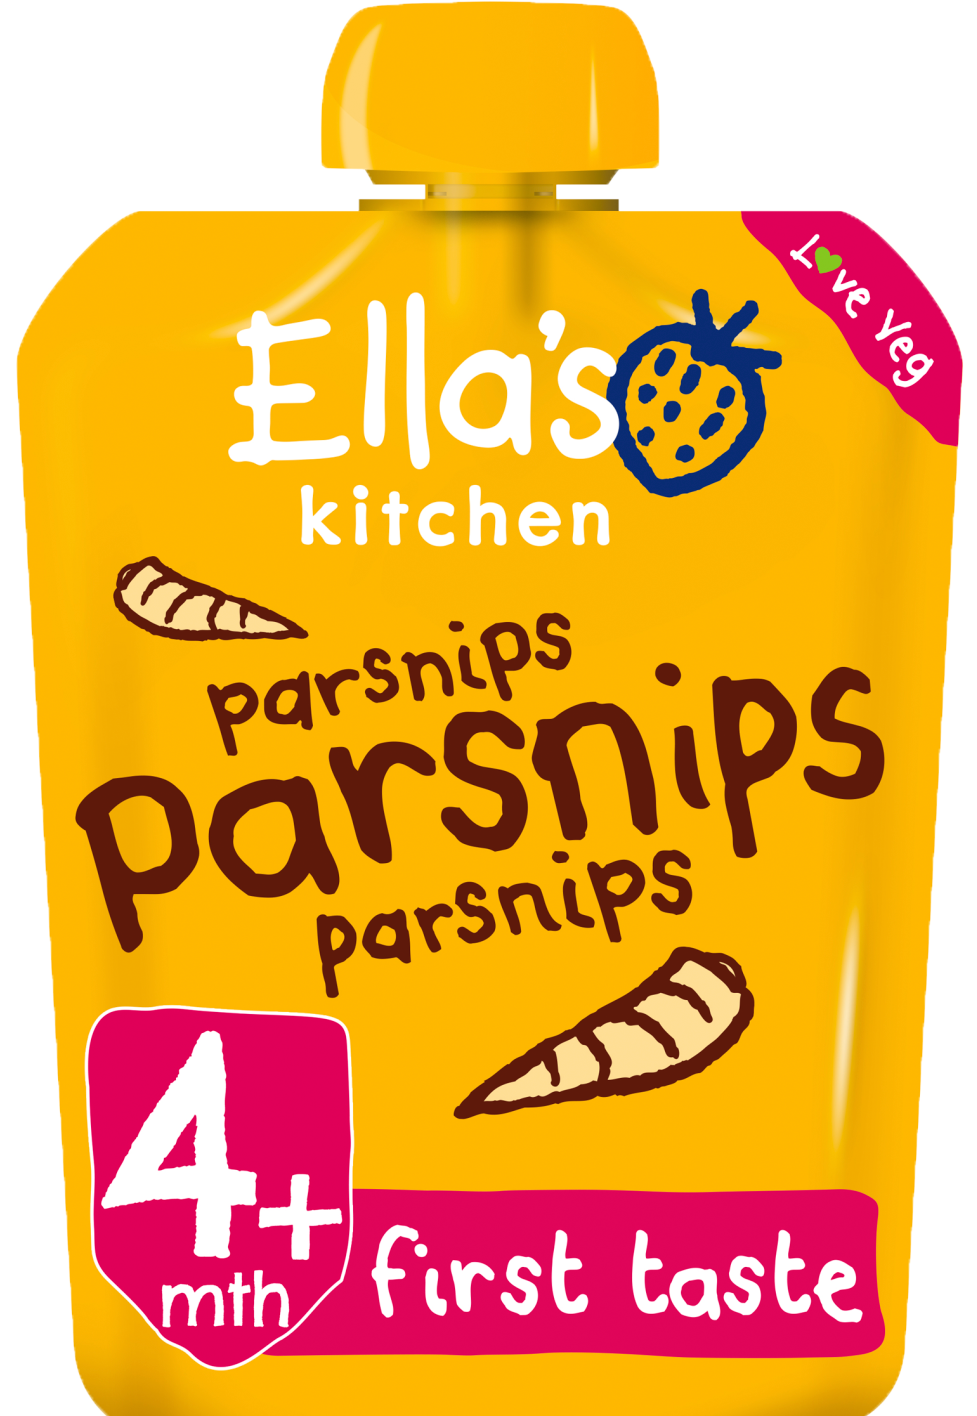 Ellas kitchen parsnips parsnips parsnips pouch front of pack O